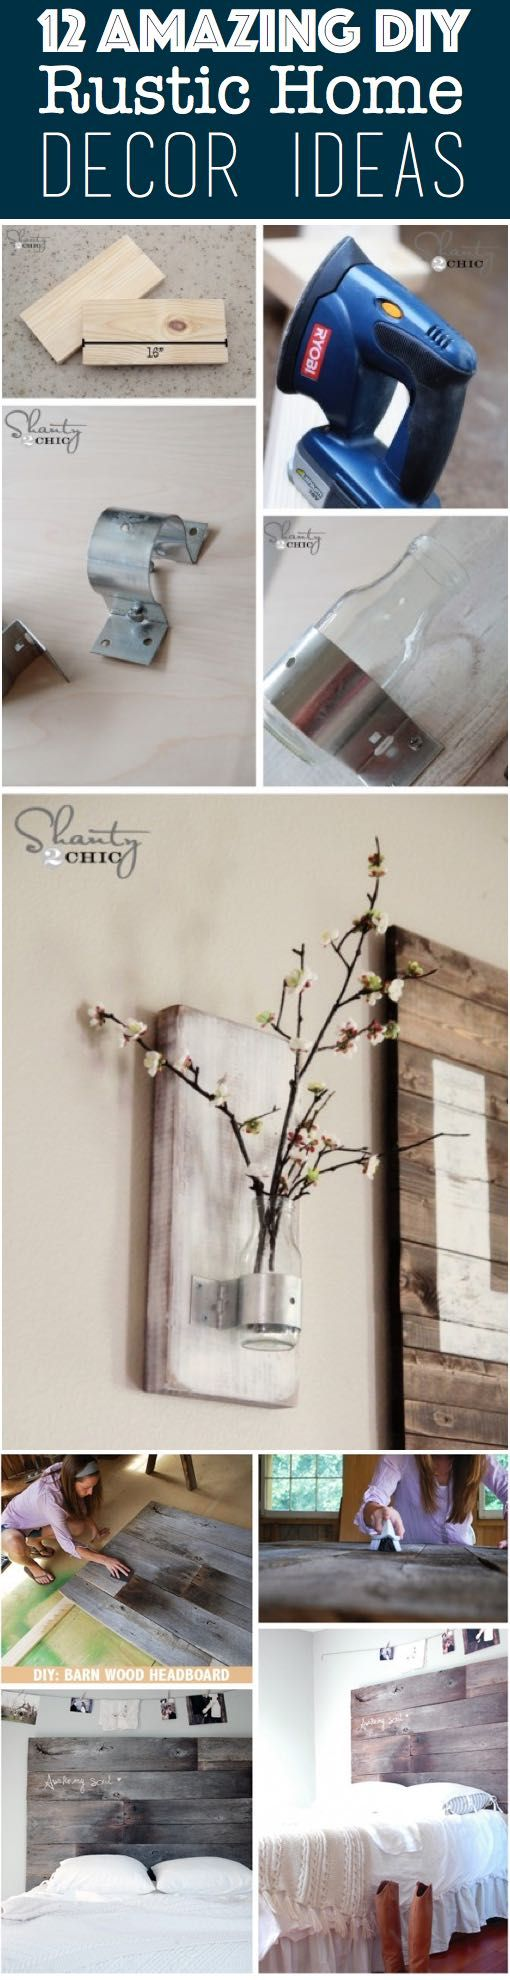 12 Amazing DIY Rustic Home Decor Ideas: